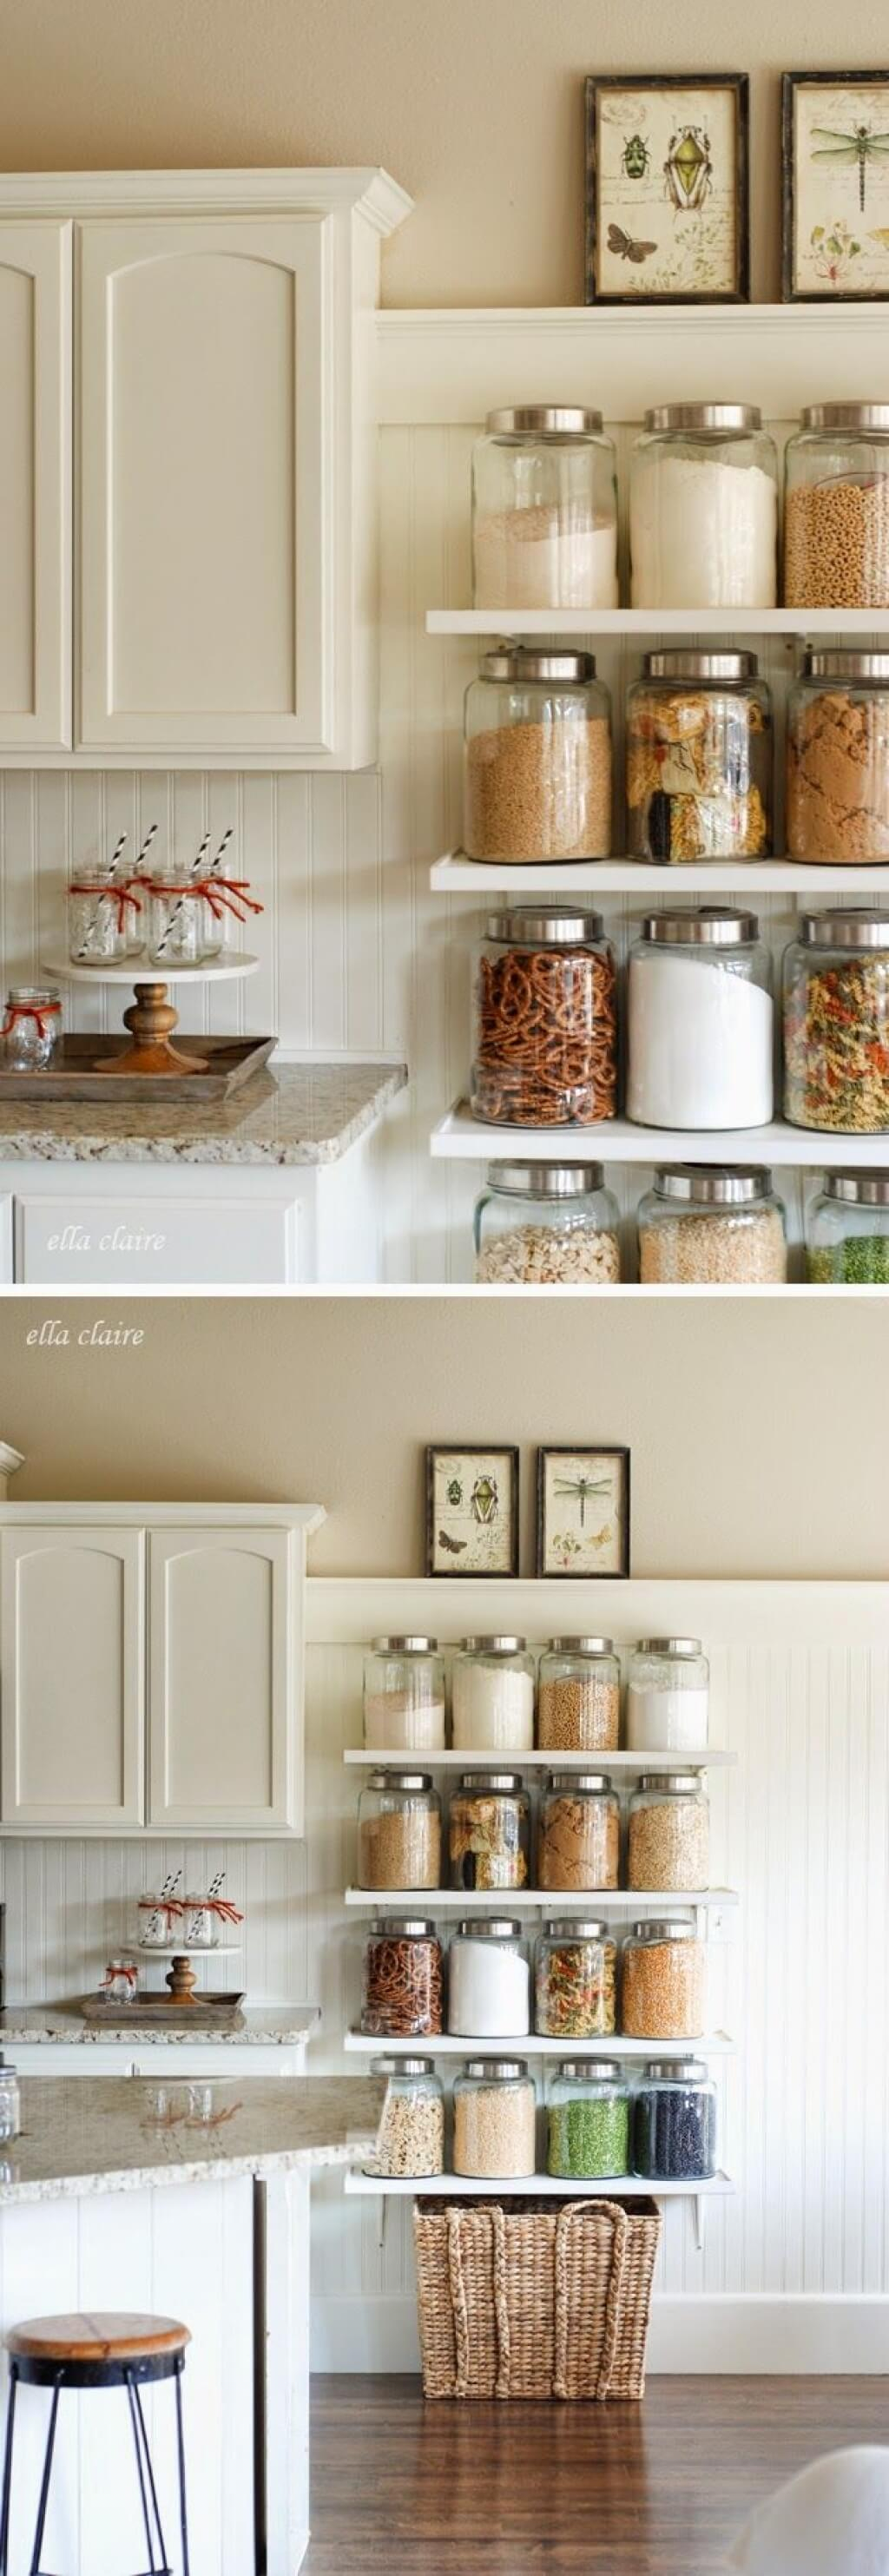 Shelving For Kitchen 35 Best Small Kitchen Storage Organization Ideas And